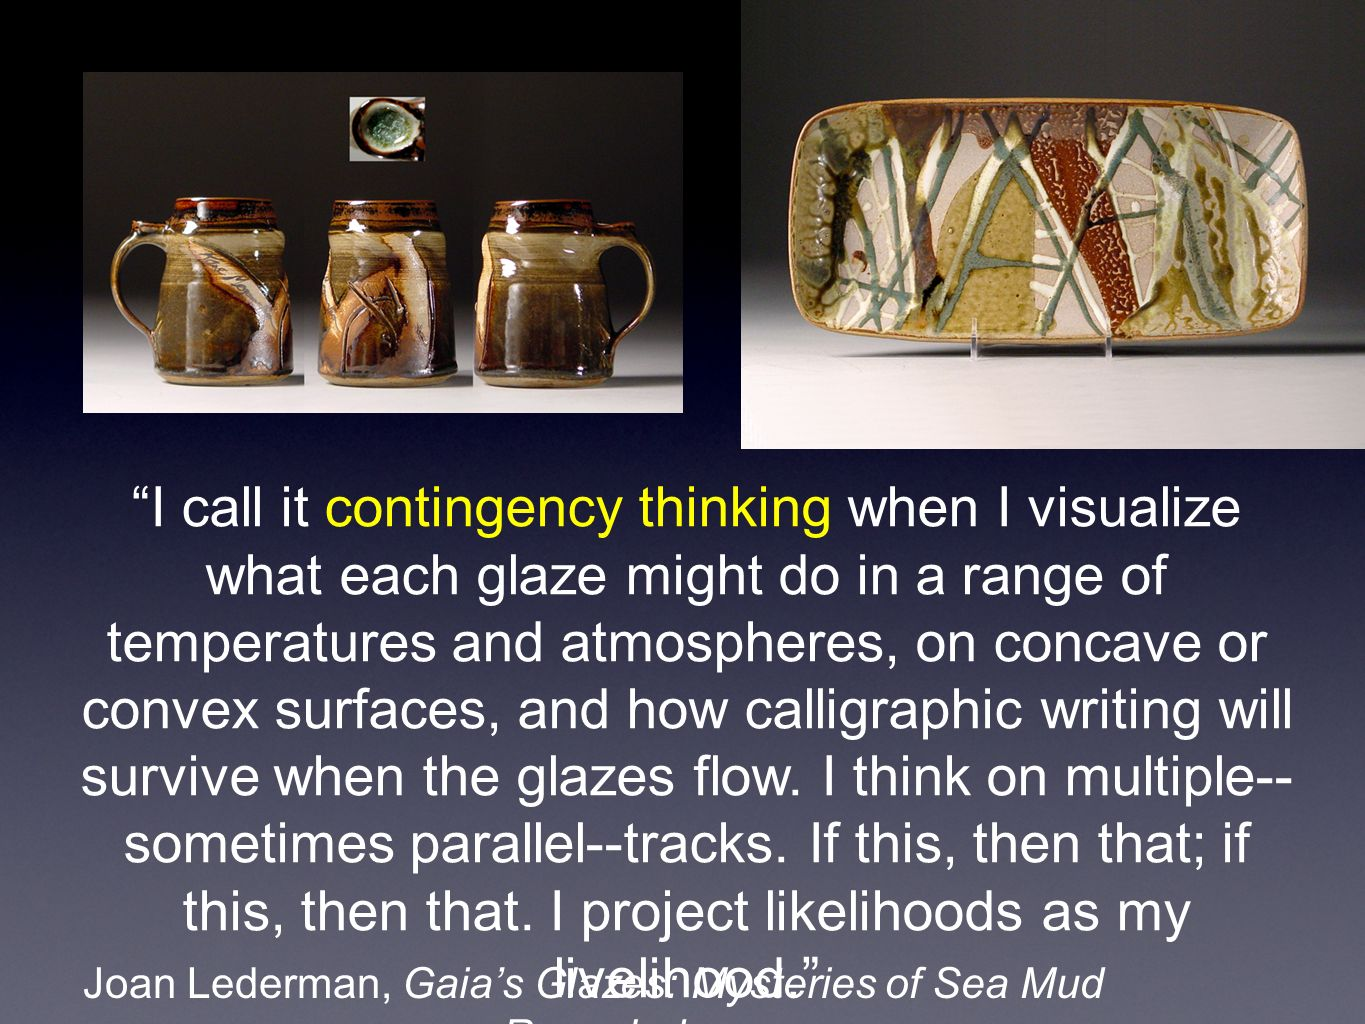 Joan Lederman, Gaias Glazes: Mysteries of Sea Mud Revealed I call it contingency thinking when I visualize what each glaze might do in a range of temperatures and atmospheres, on concave or convex surfaces, and how calligraphic writing will survive when the glazes flow.